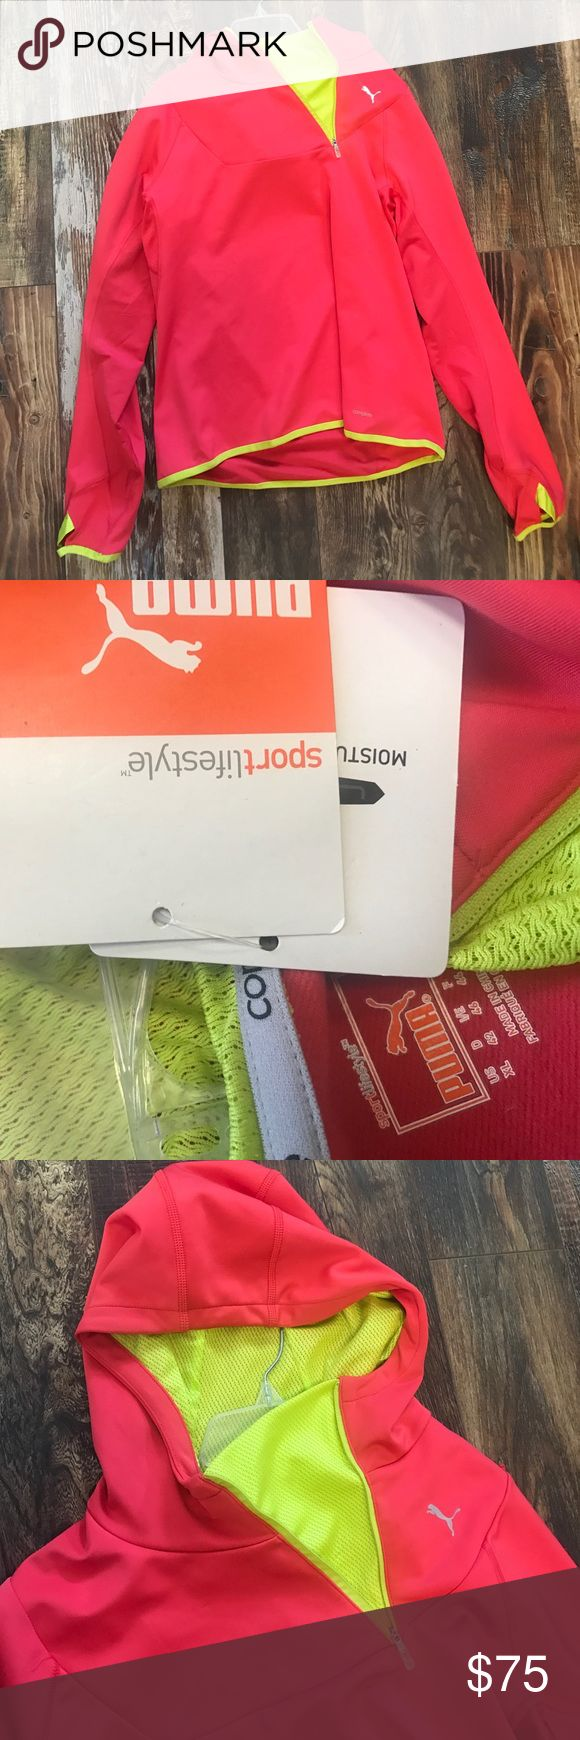 Women's Puma Jacket Brand new, with original tags!! Add this jacket with moisture management to your workout gear to be stylish and comfortable!! Puma Jackets & Coats